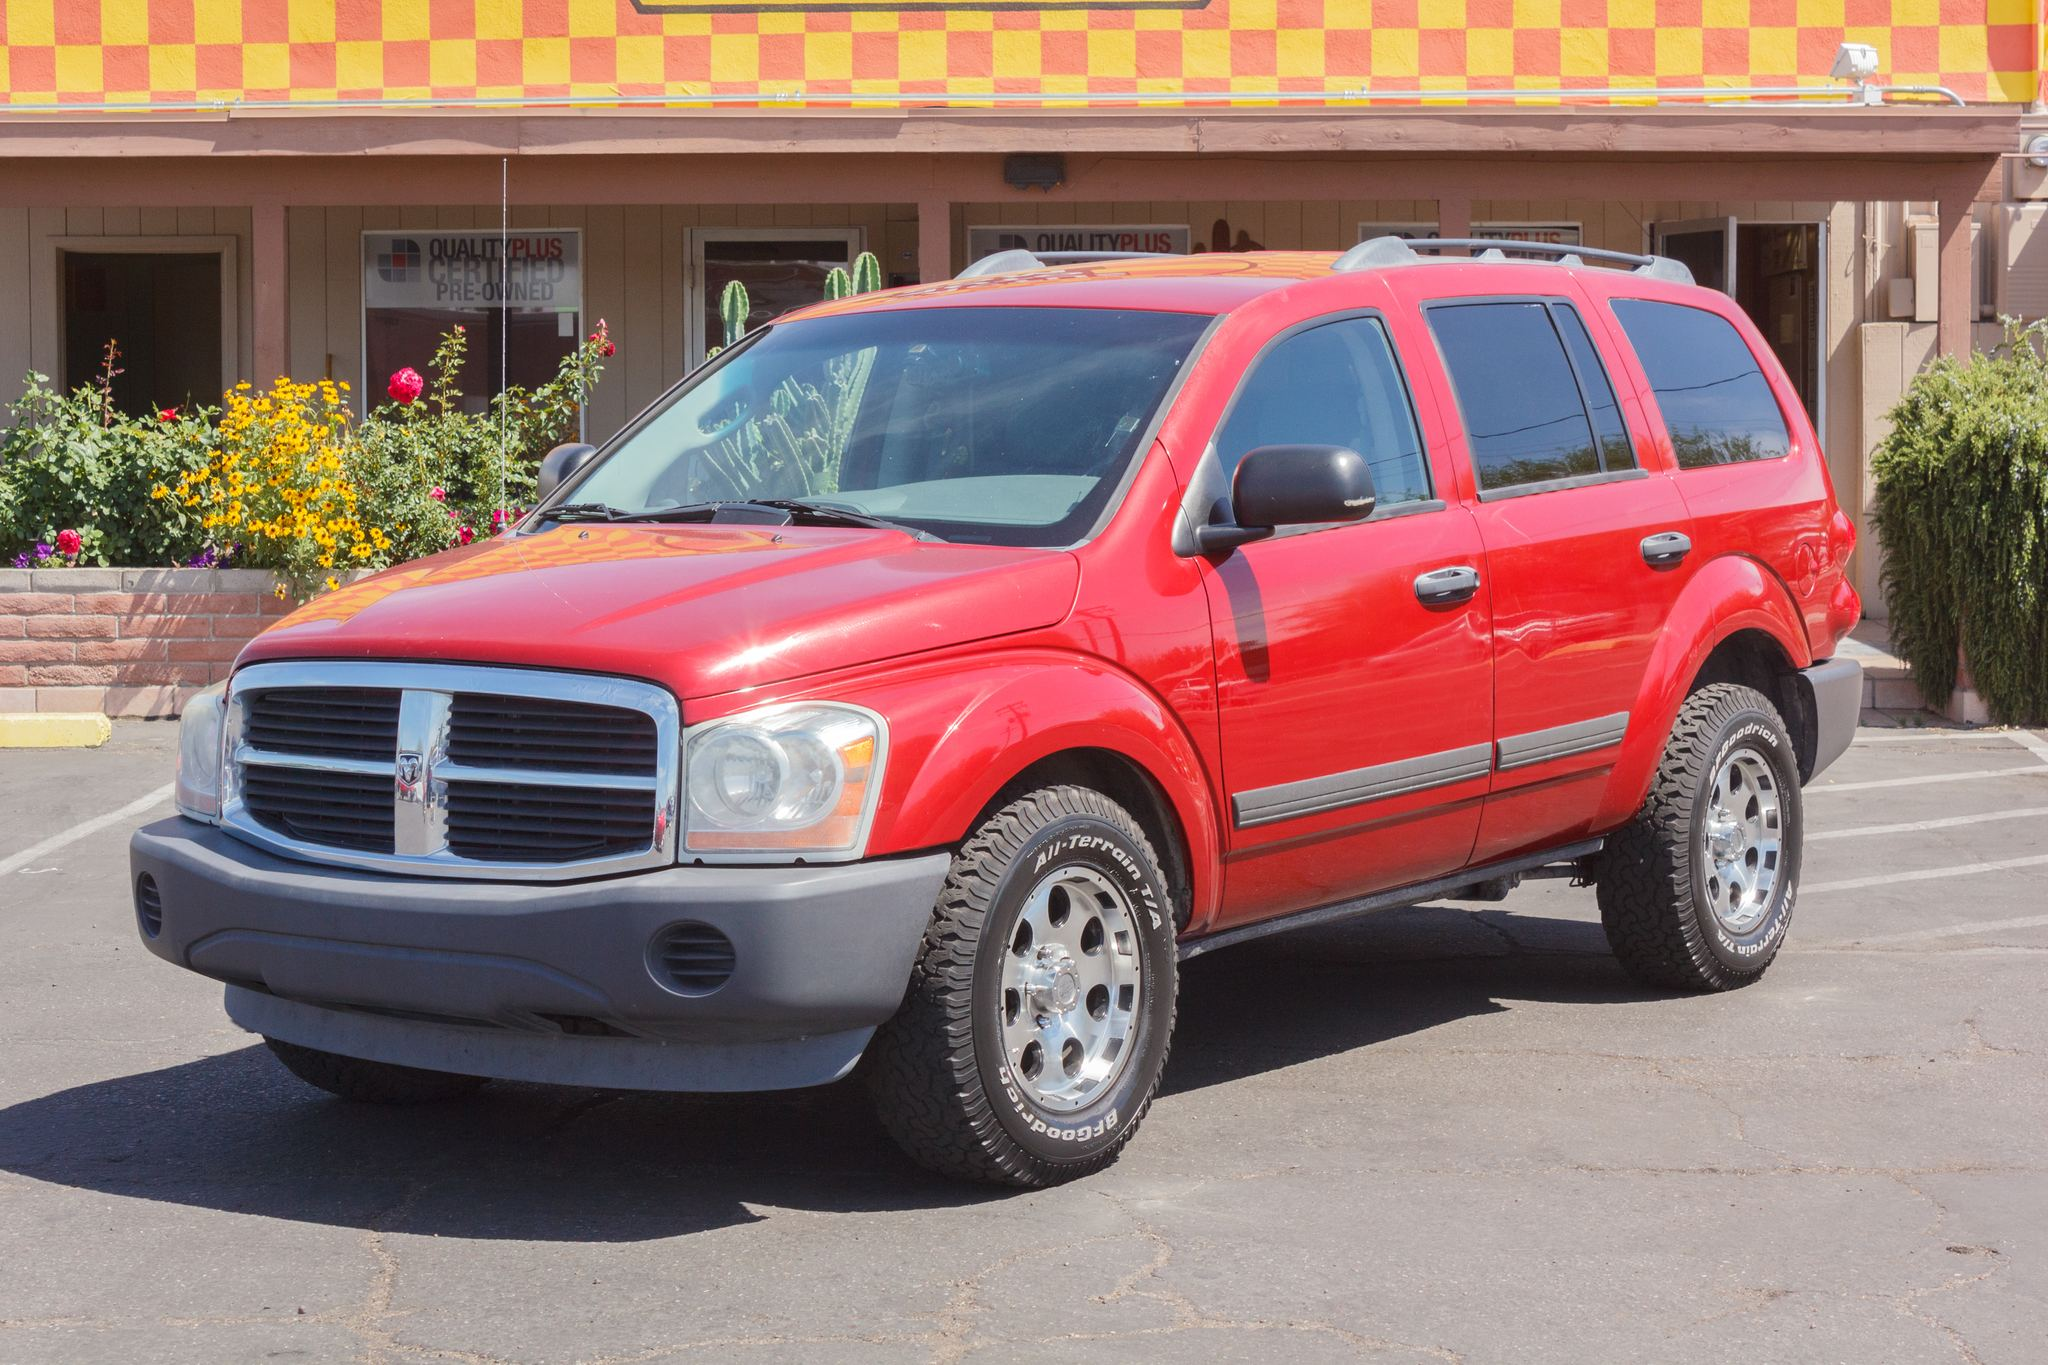 Photo of 2006 Dodge Durango 2WD 4d Wagon SXT Inferno Red Crystal Pearlcoat